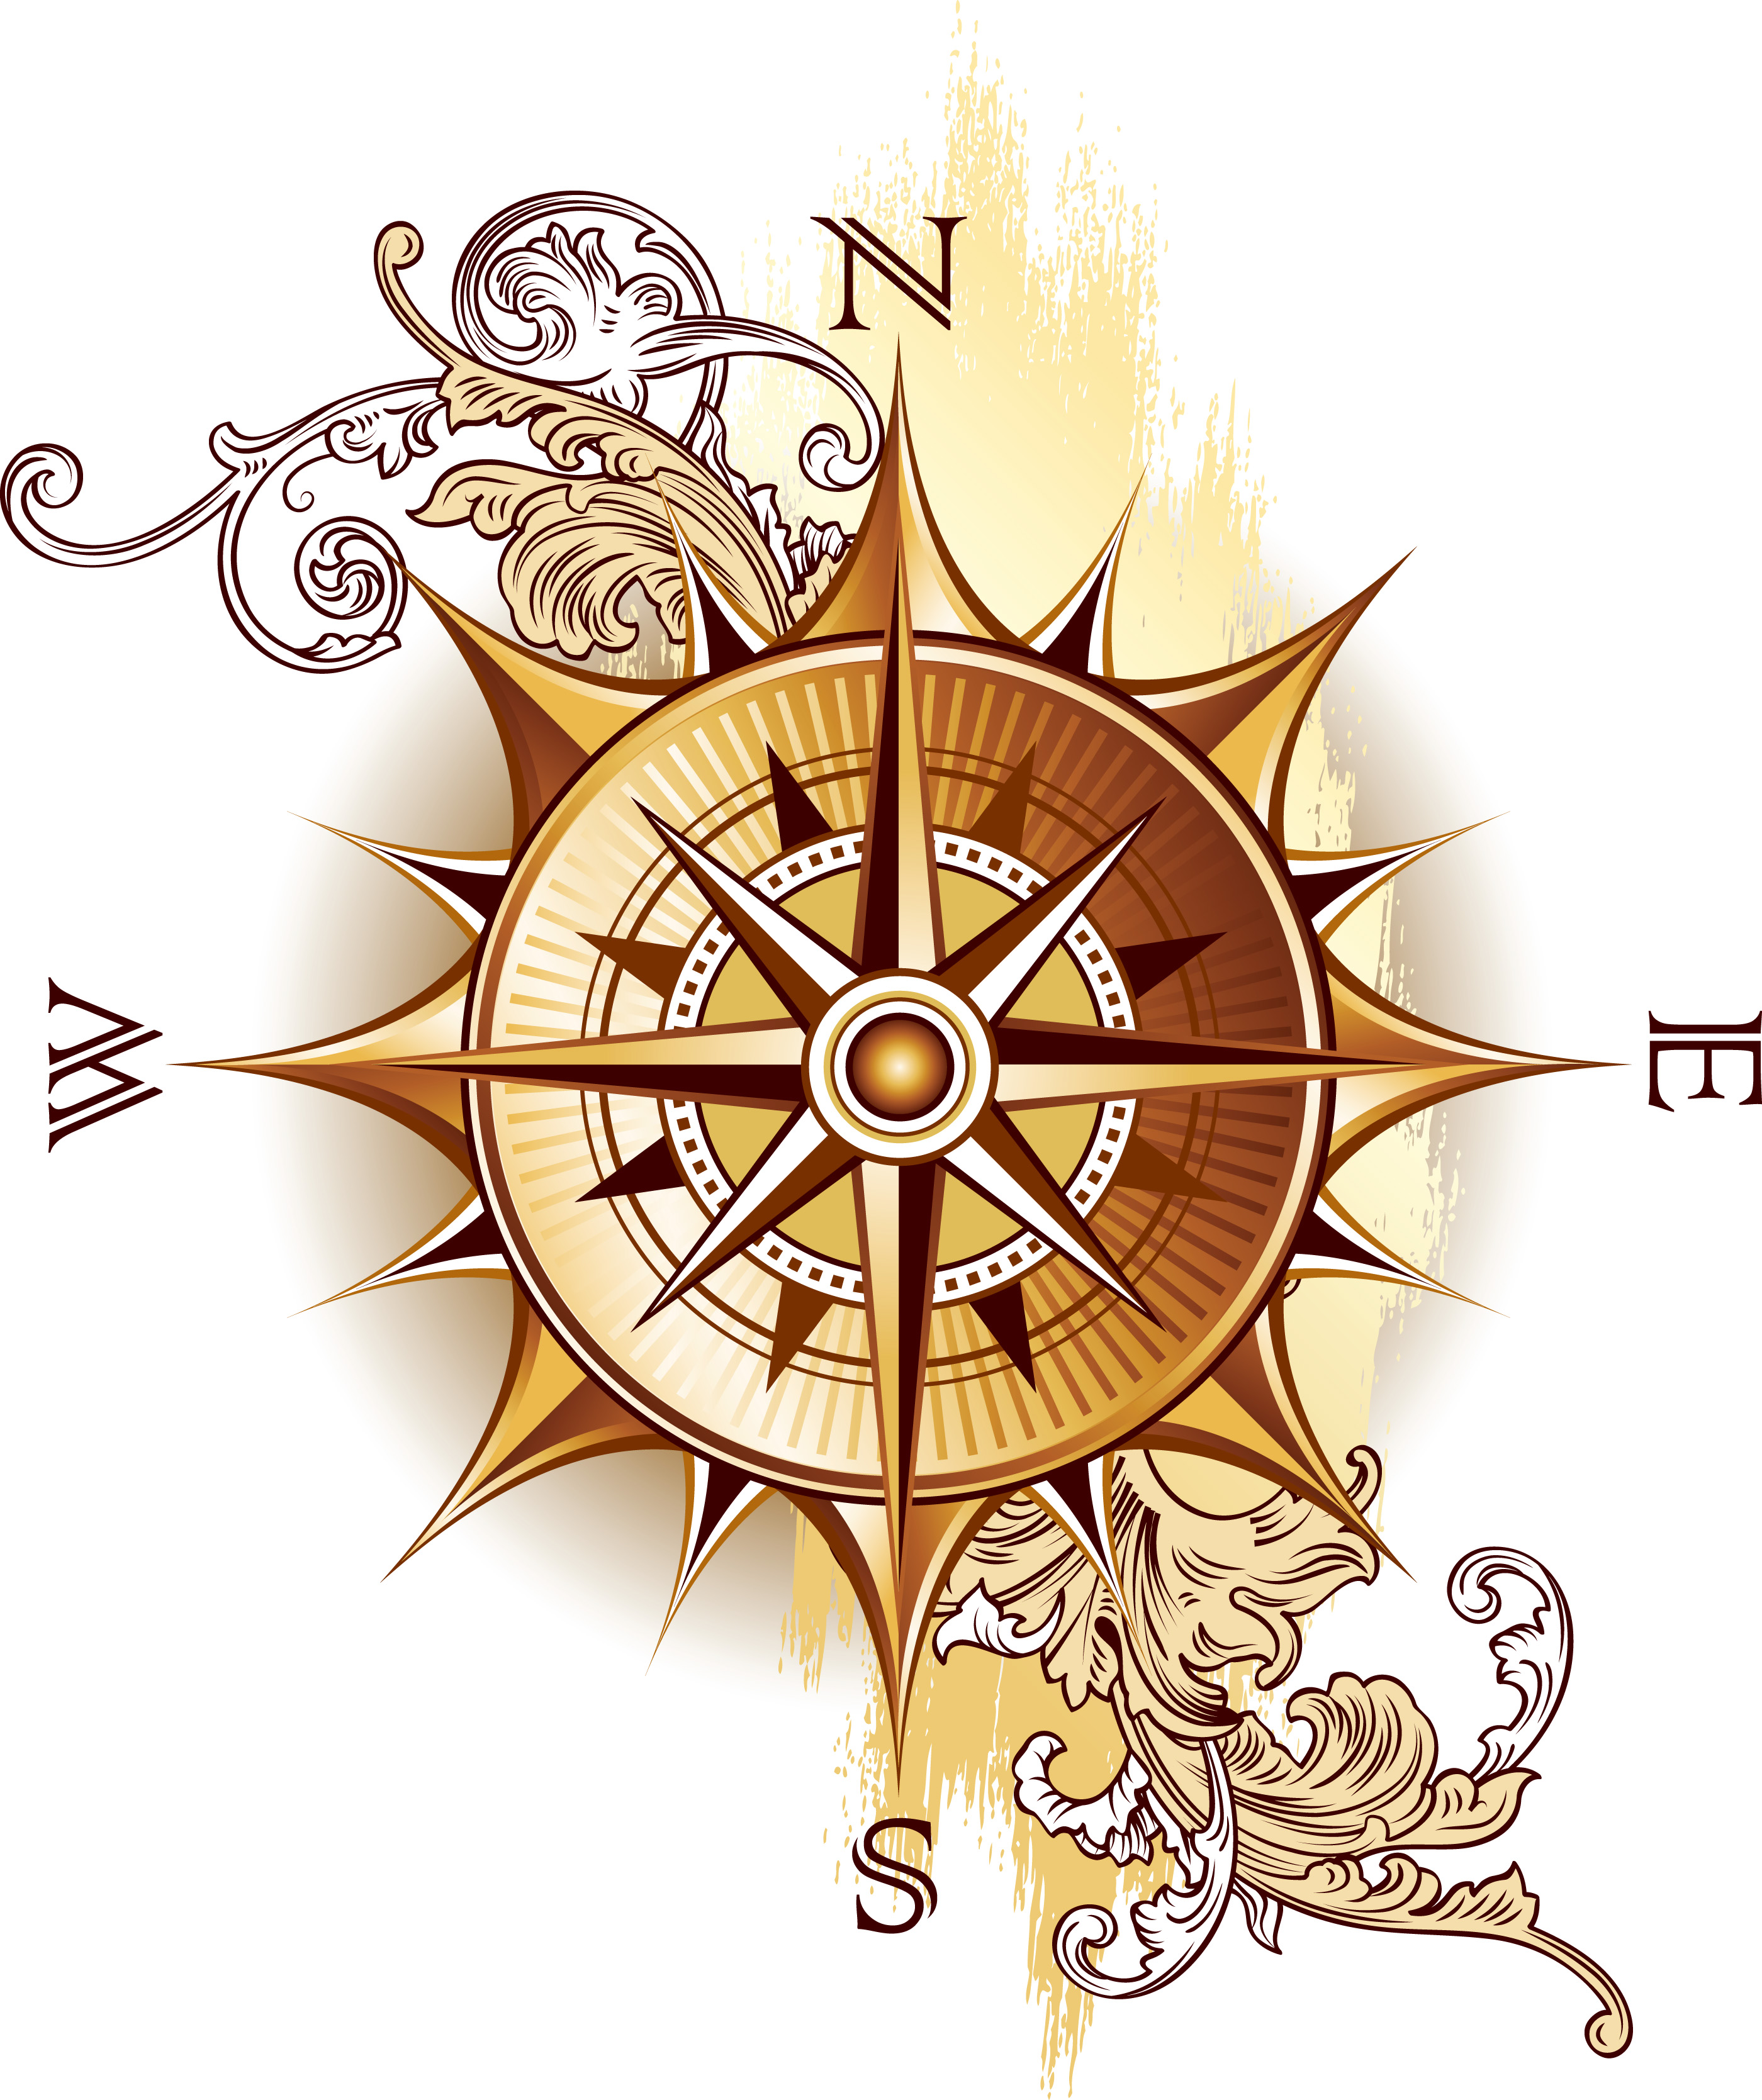 Antique compass drawing png images for Free online drawing